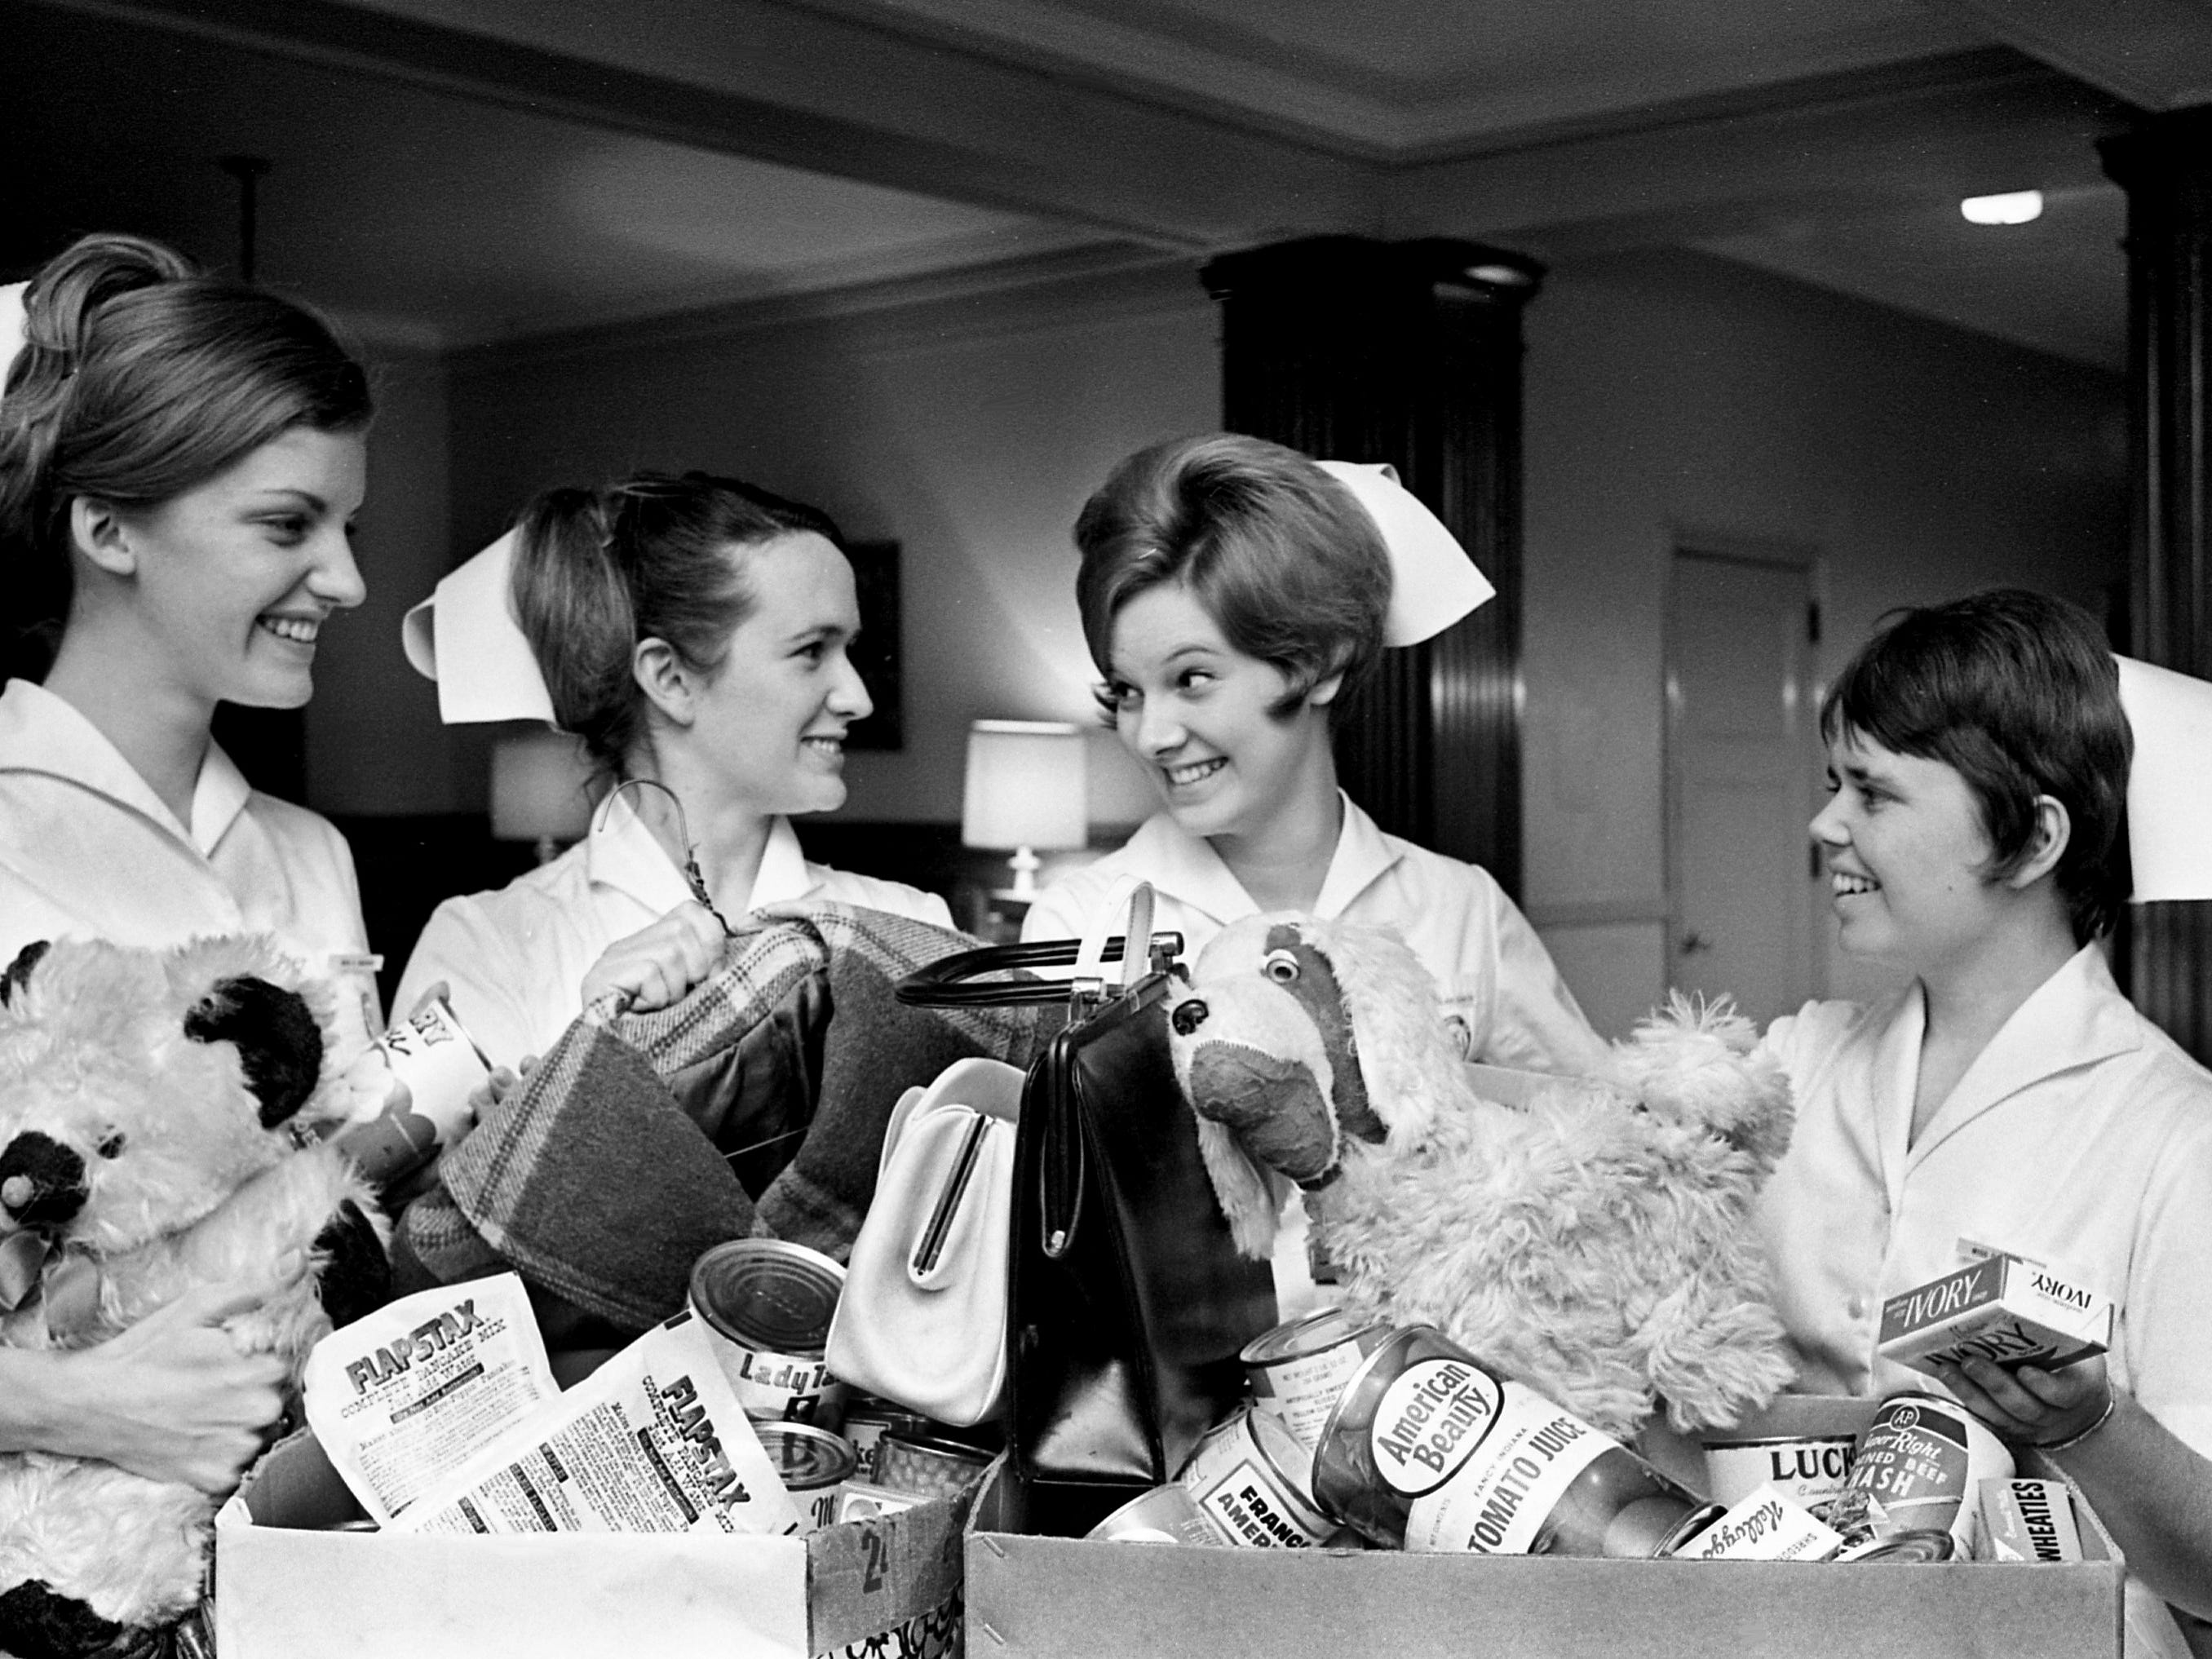 St. Thomas School of Nursing students Catherine Gregory, left, Dot Shelton, Deanie Smith and Denise Hooper, all student body officers, gather food and clothing Nov. 26, 1968 that will be given to needy families during the holiday season.